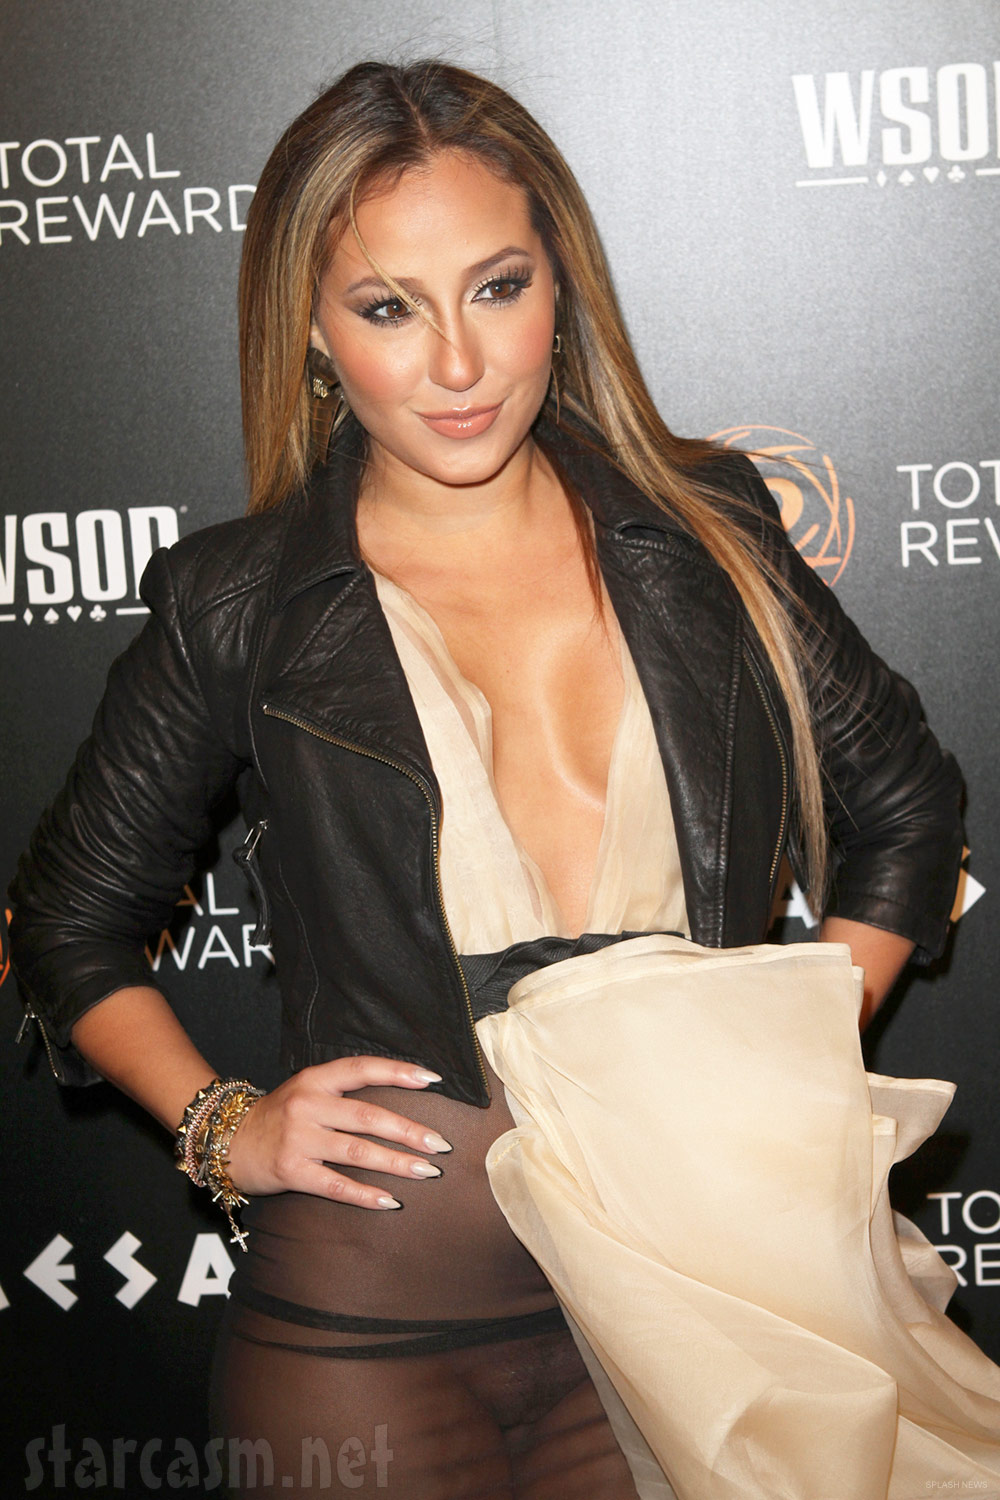 ... AUTHOR: Asa Hawks ; | Related : Adrienne Bailon , Wardrobe Malfunction